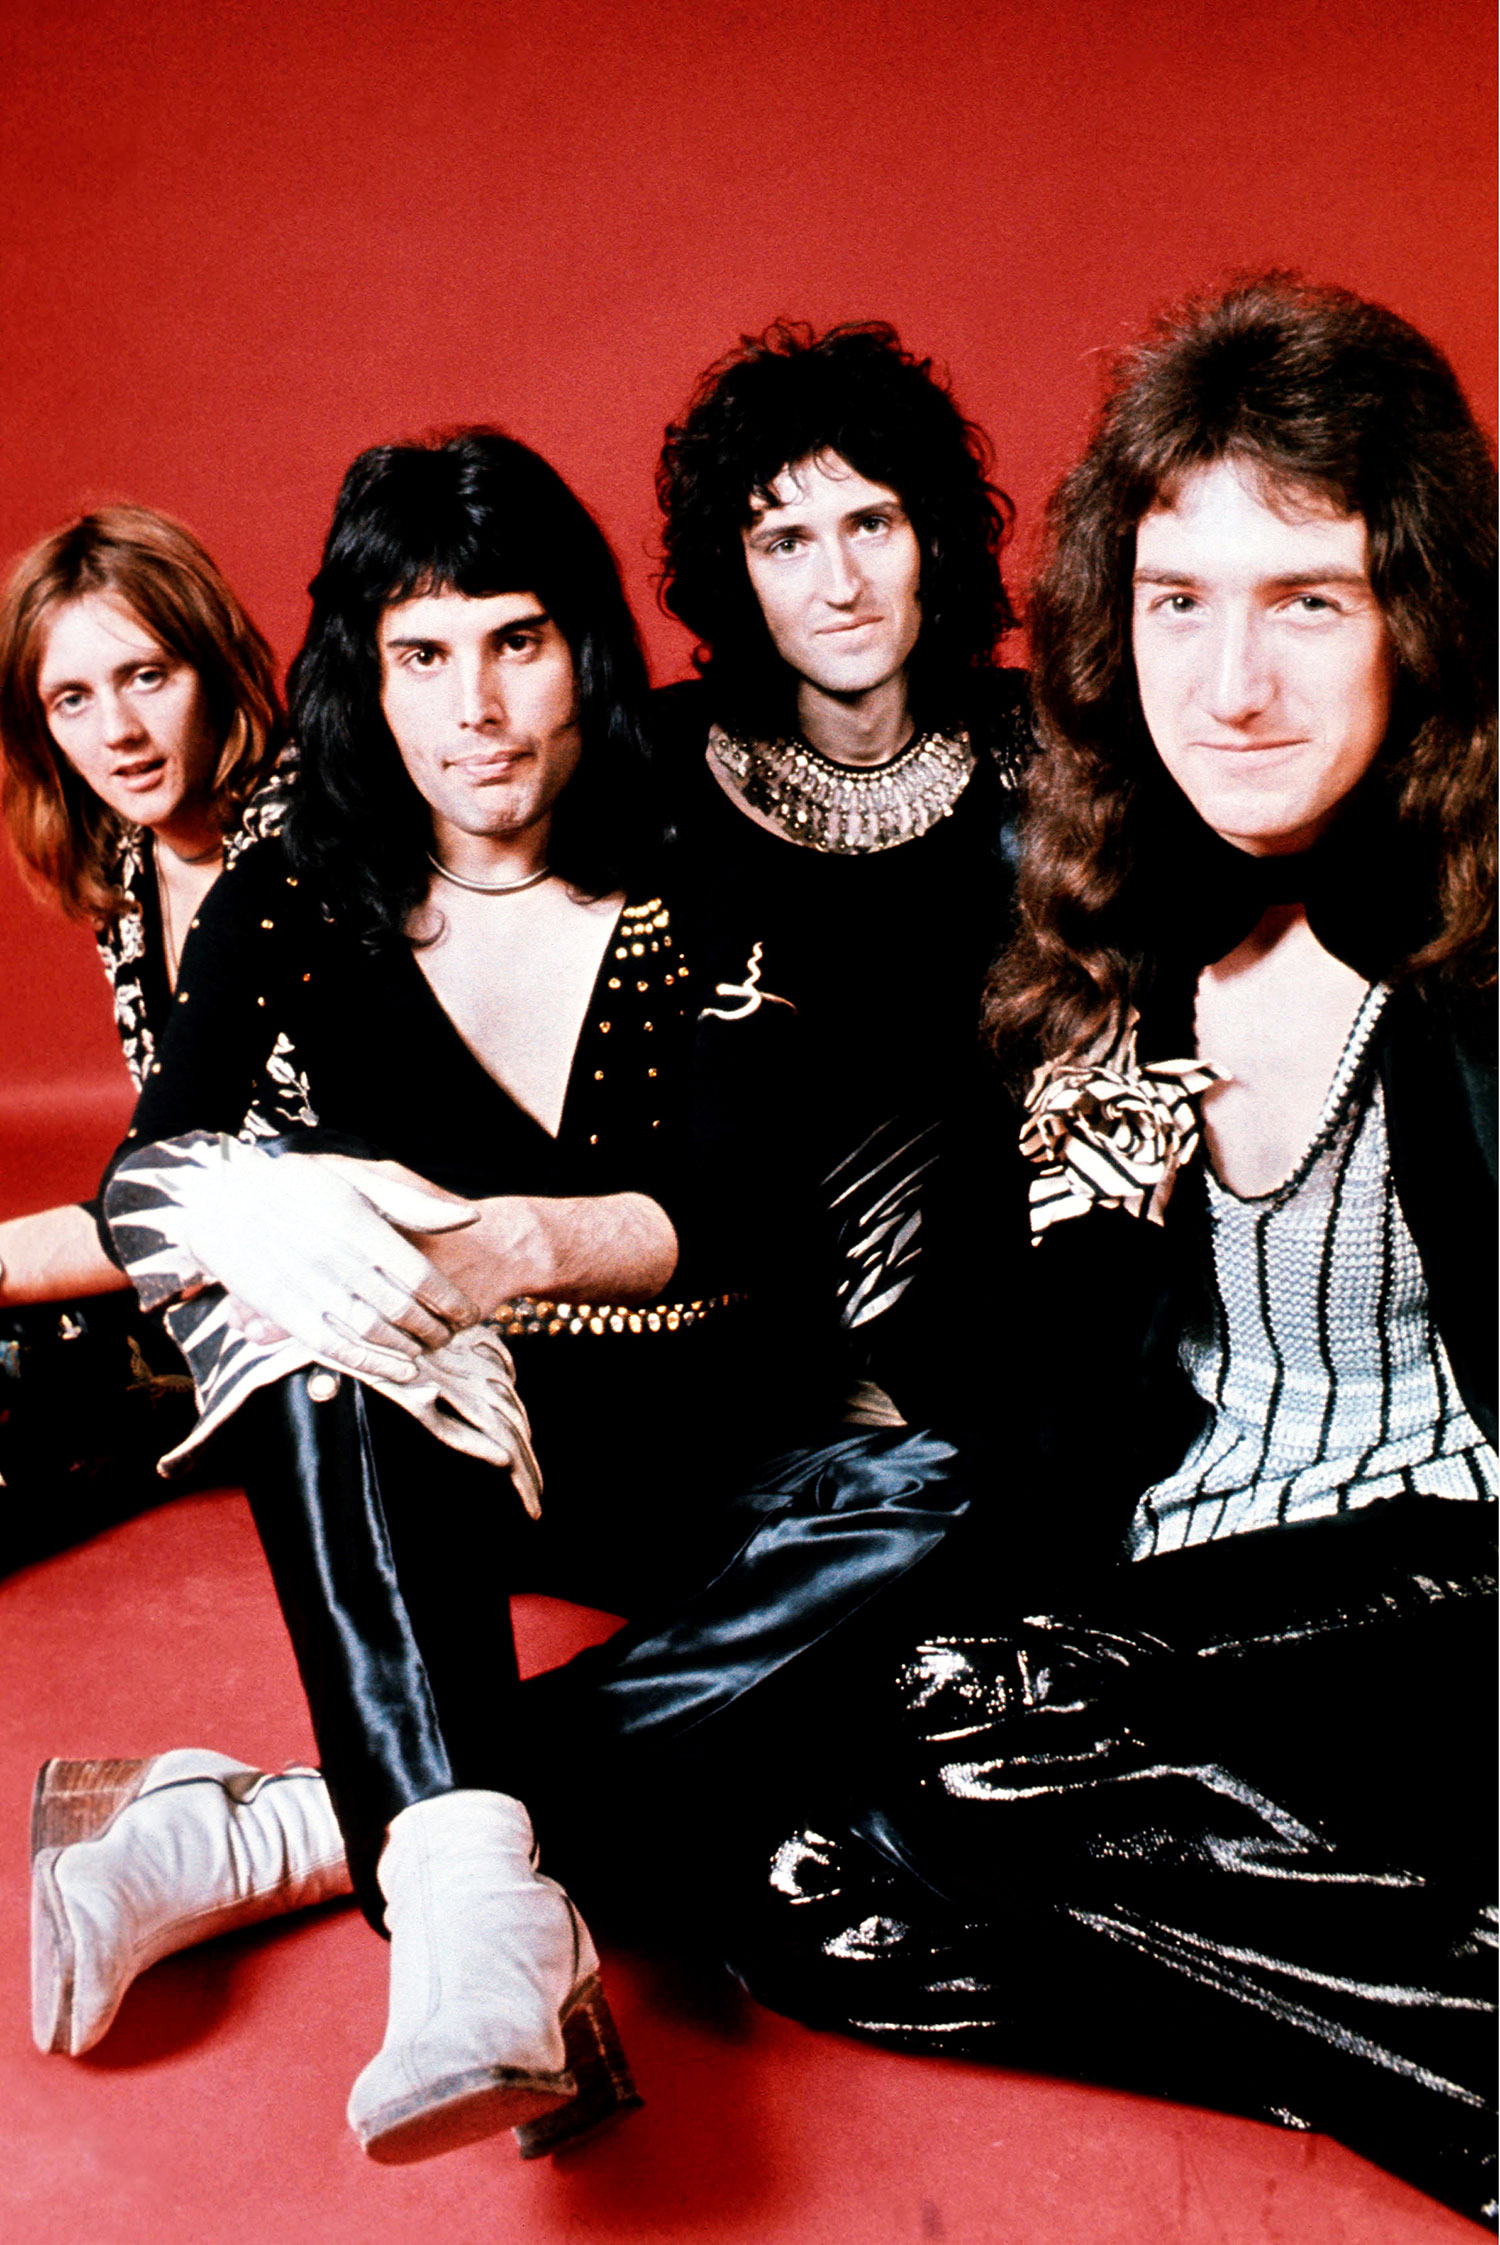 Hear Queen's 'Fast Version' of 'We Will Rock You' From 1977 – Rolling Stone